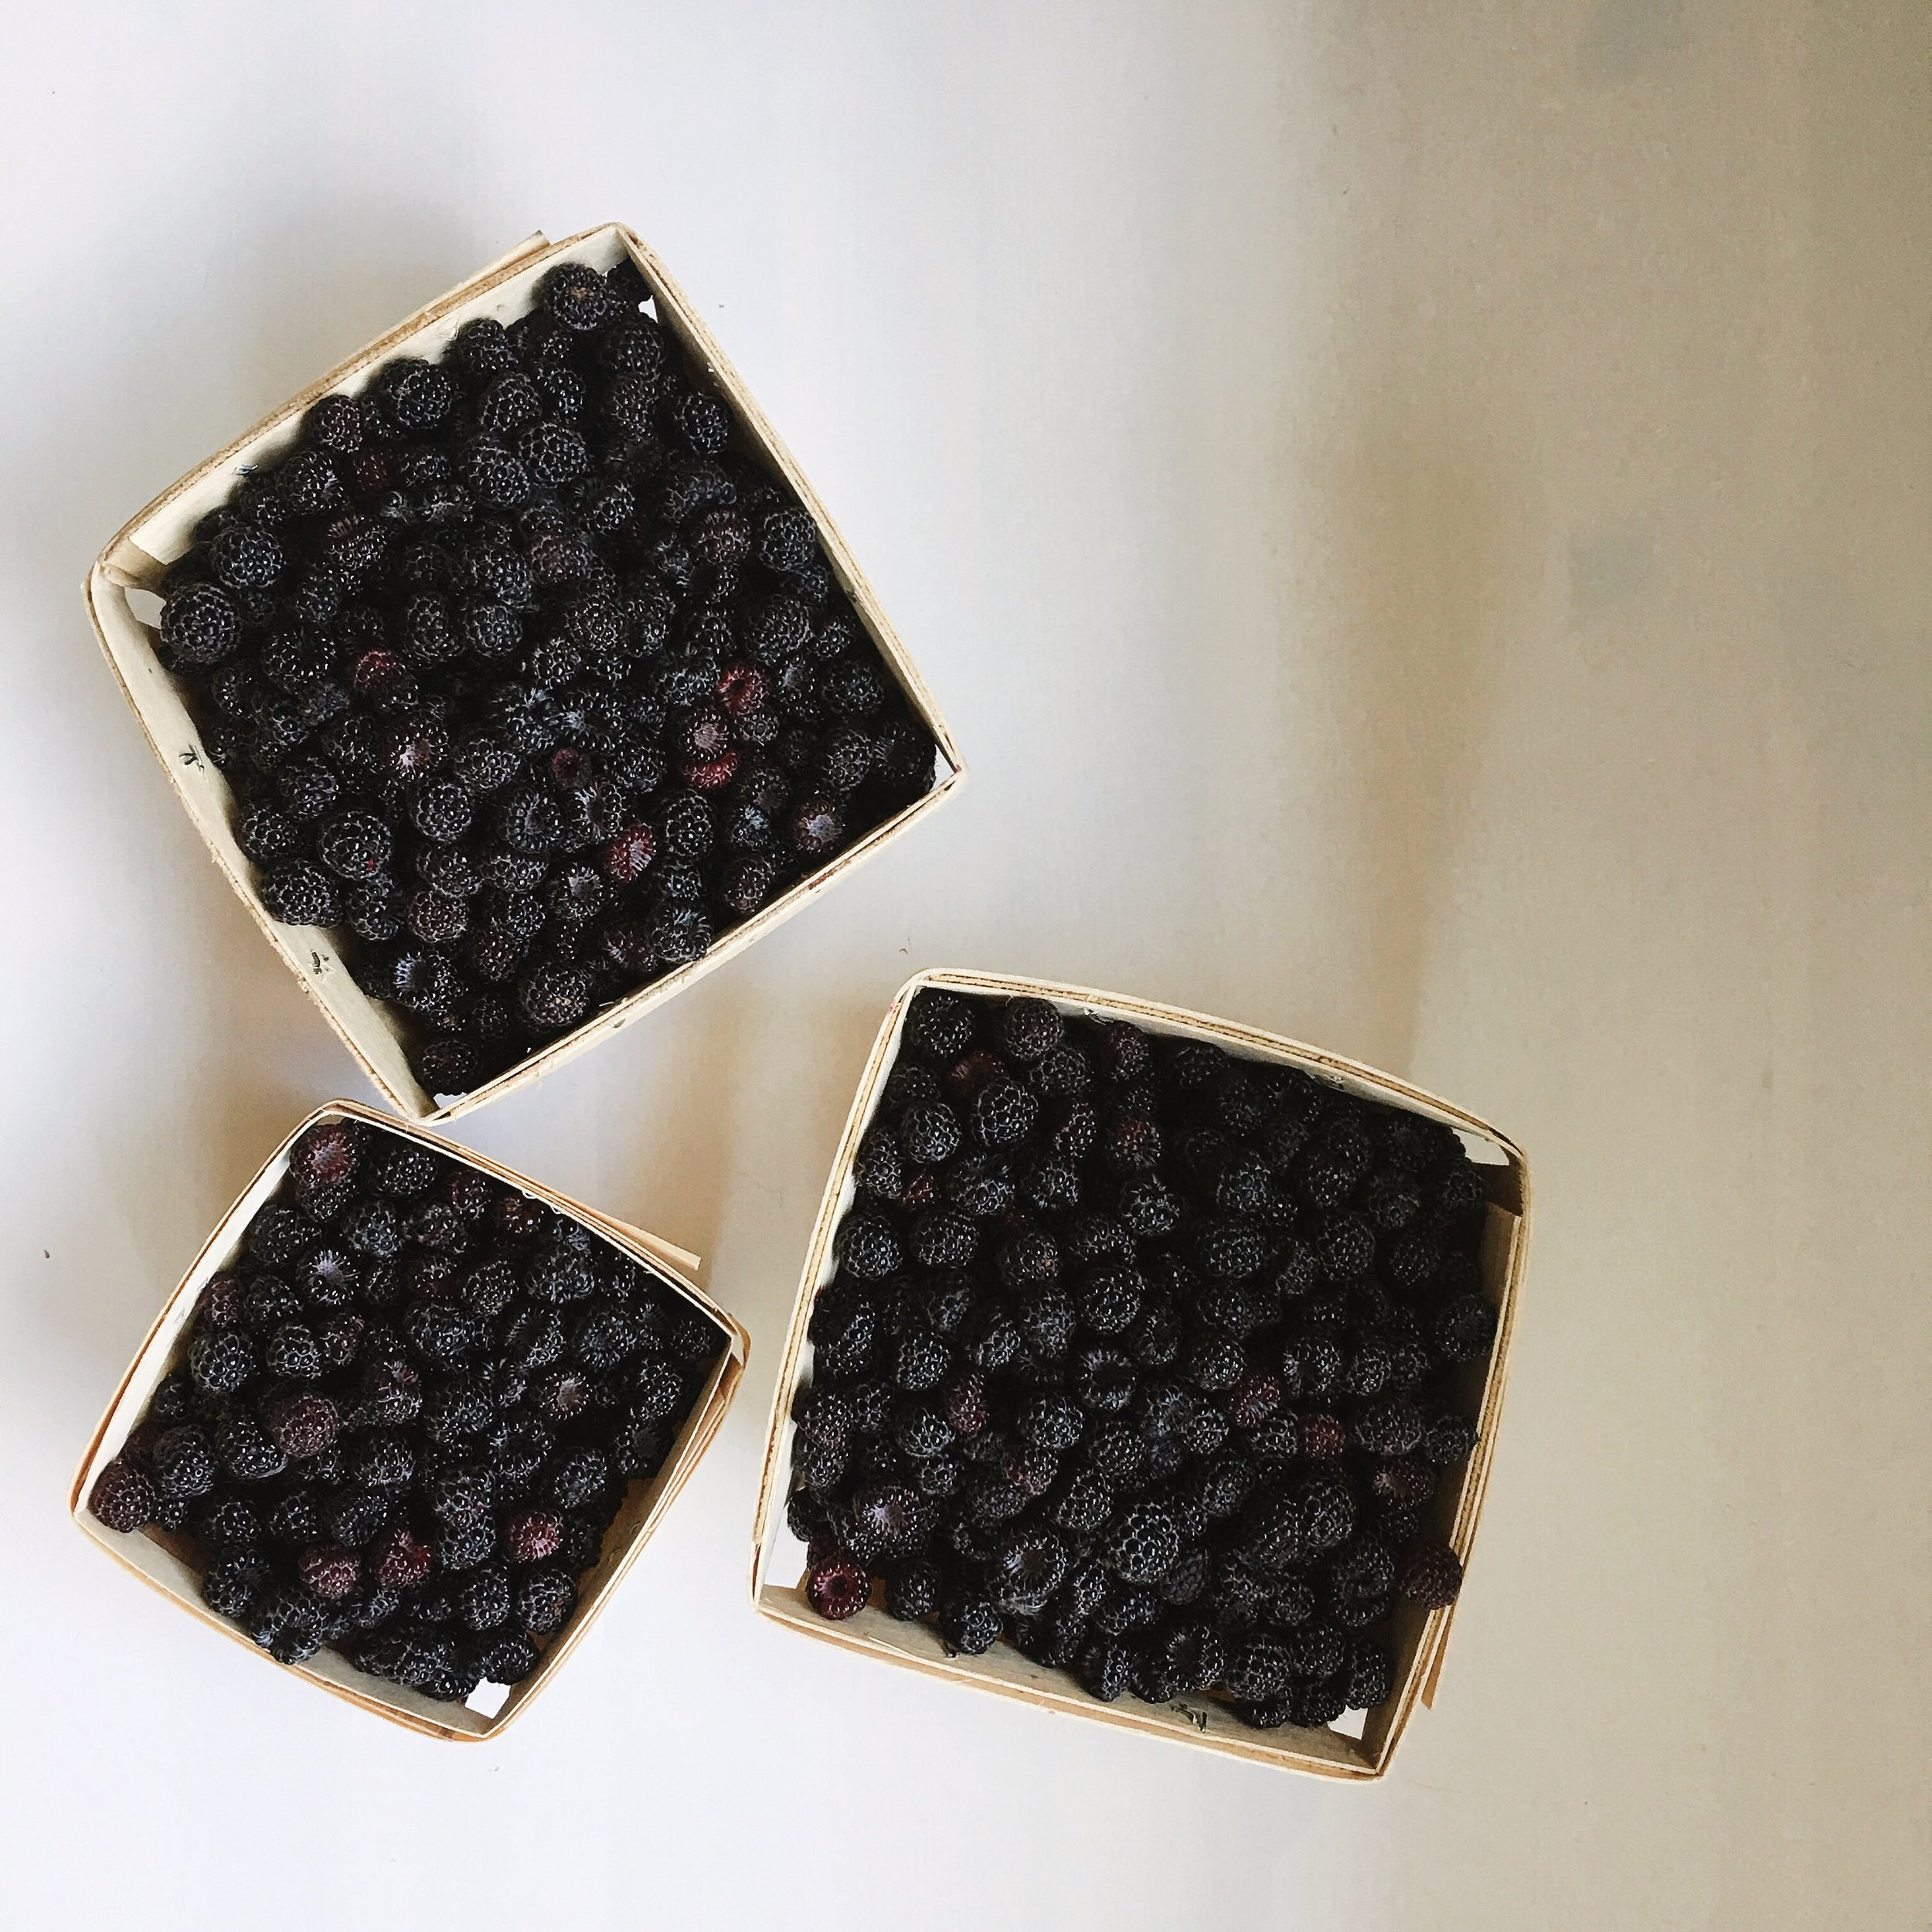 WE HAVE A FEW BLACK RASPBERRY BUSHES...JUST ONE OR TWO...THE PREVIOUS OWNERS OF OUR HOME WERE JAM MAKERS FOR SURE.